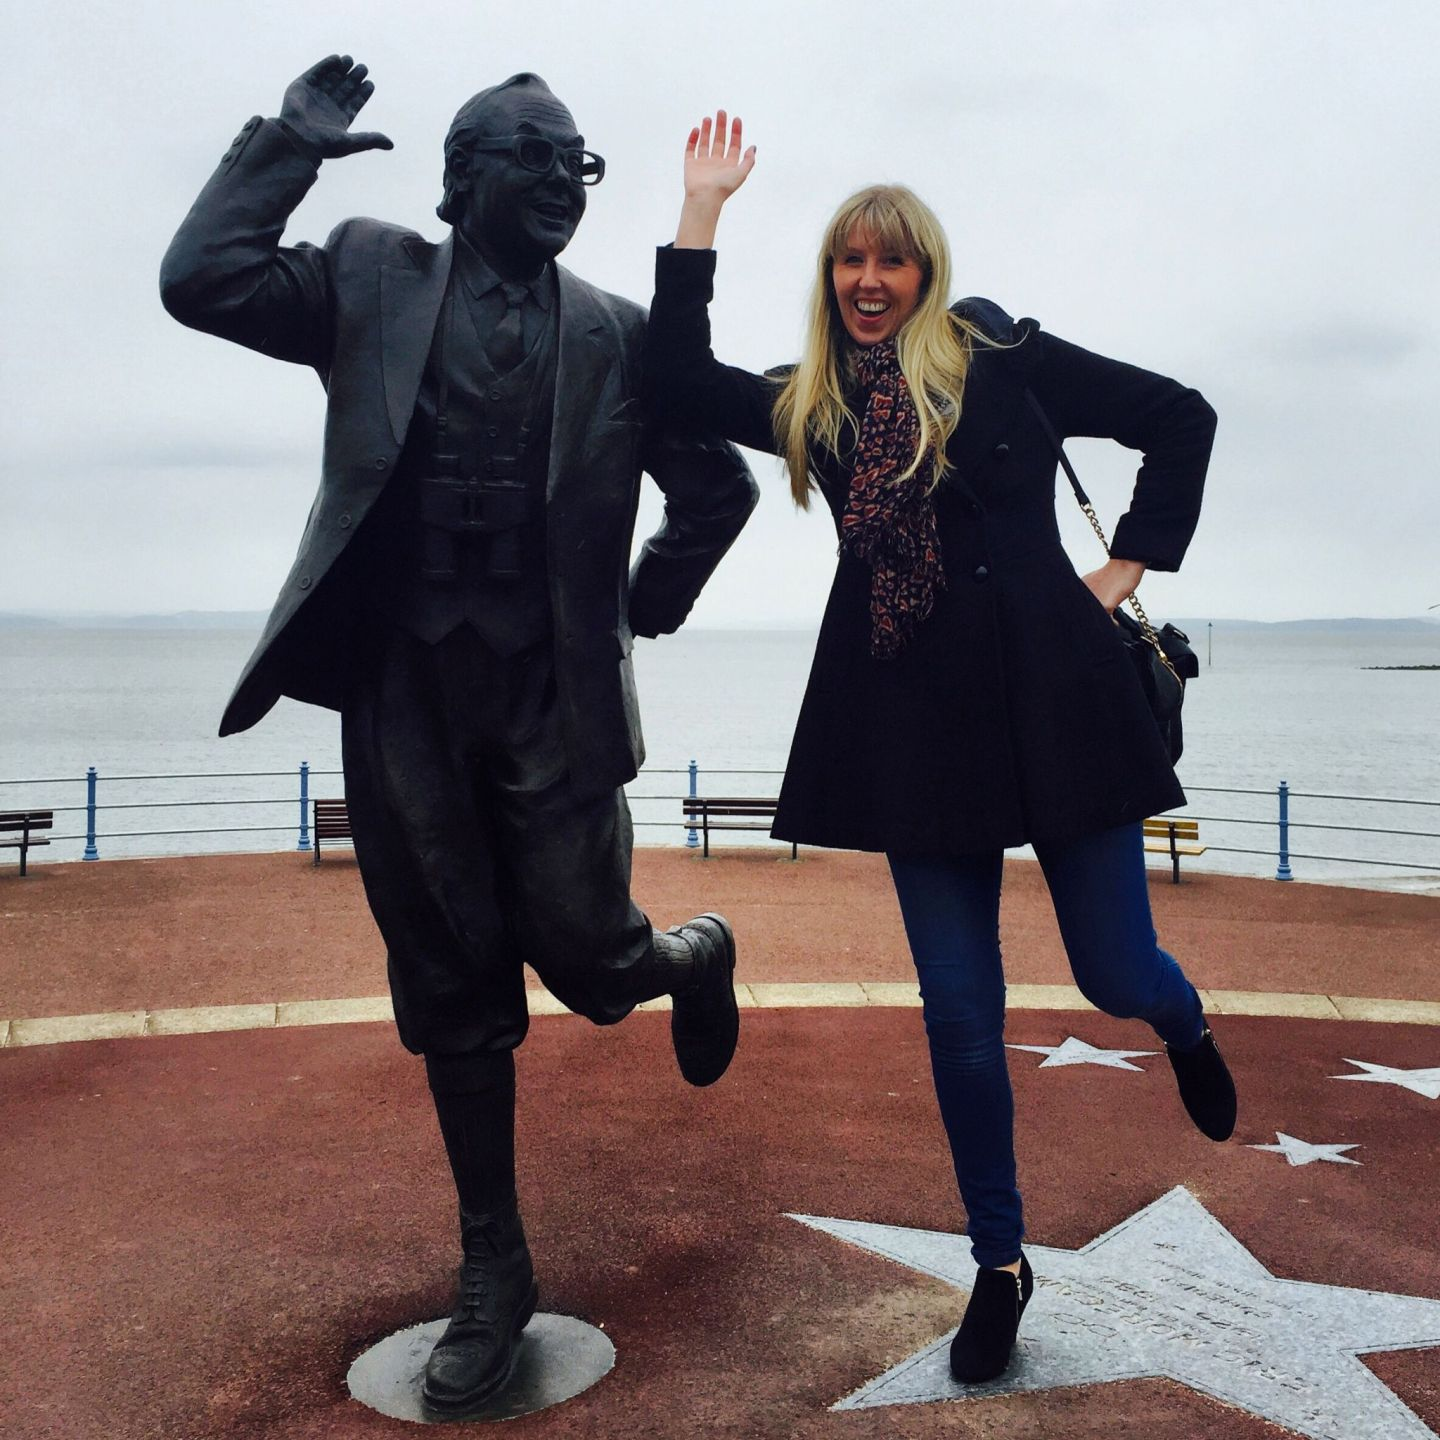 My friend Mel meets the rightfully restored Eric Morecambe statue on the prom